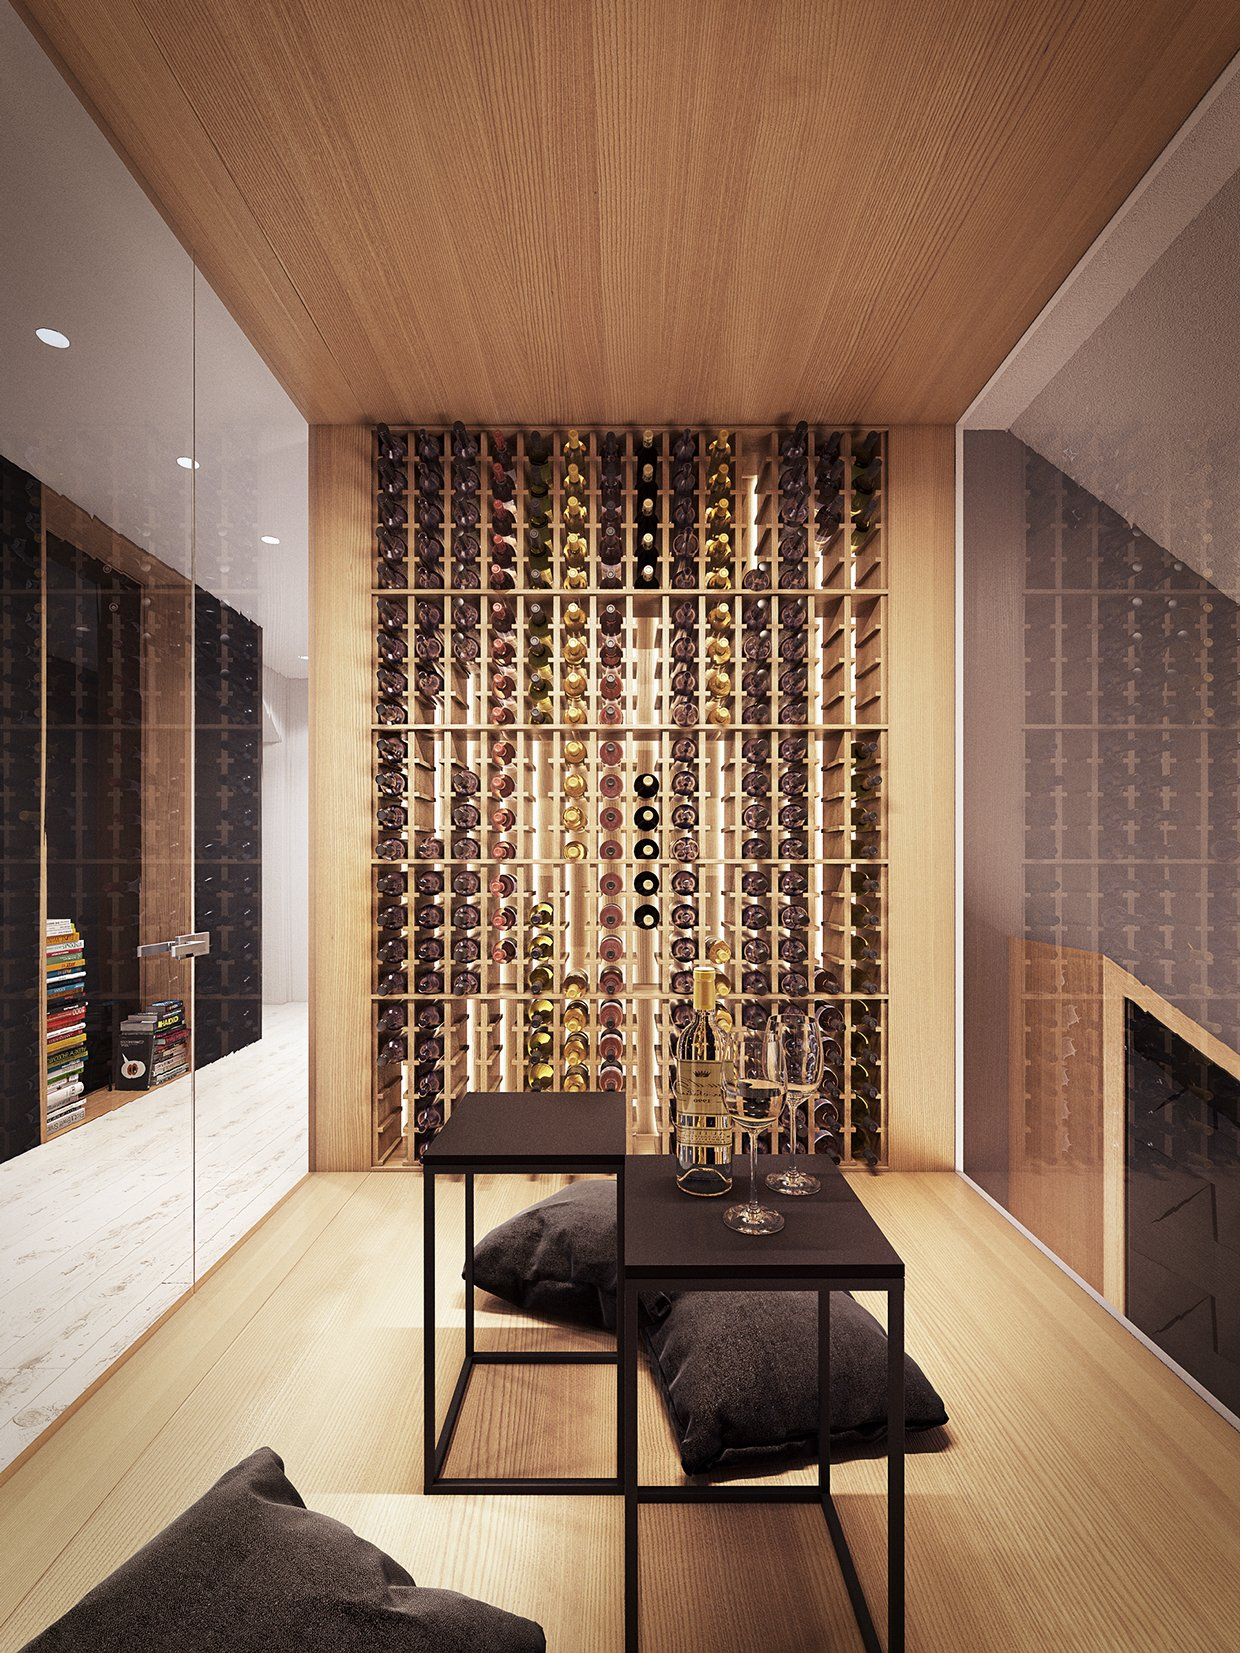 like architecture interior design follow us - Wine Cellar Design Ideas